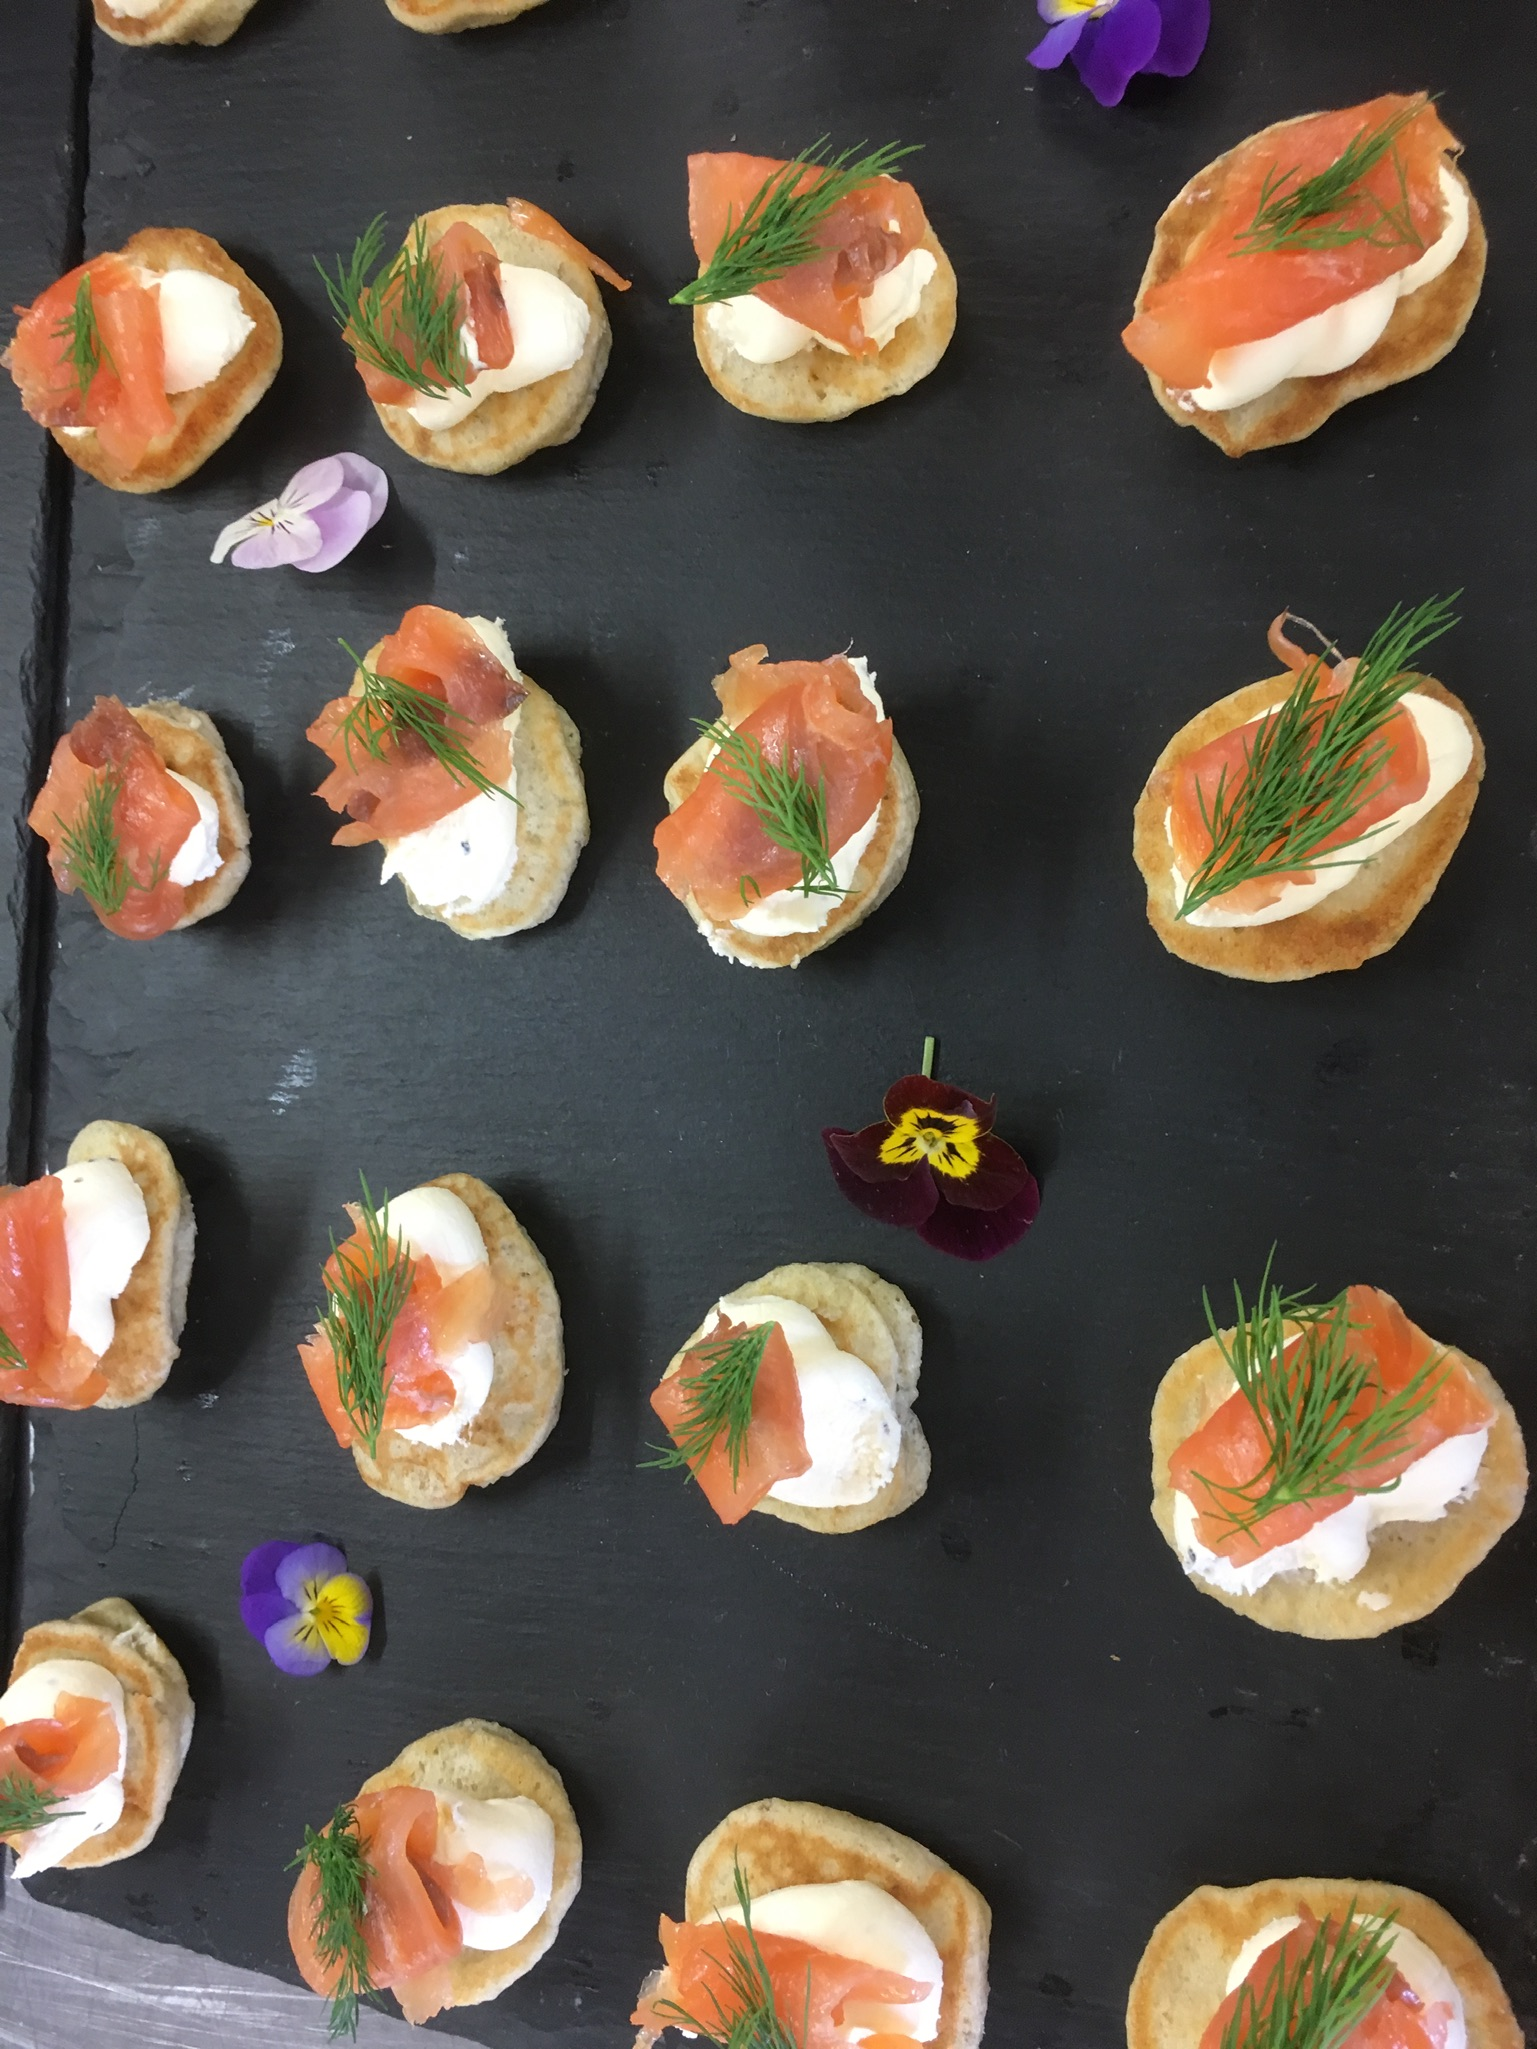 Harefield Barn Caterers